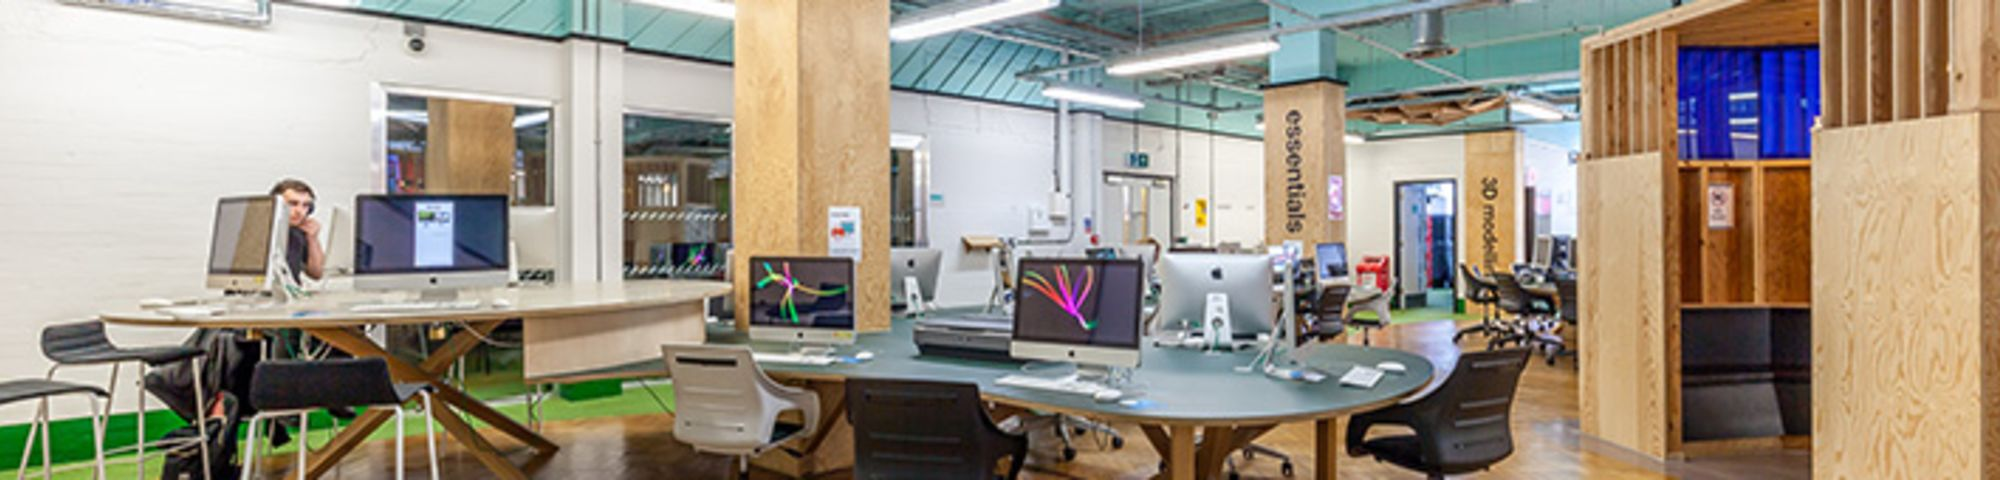 View of Macs in the digital space